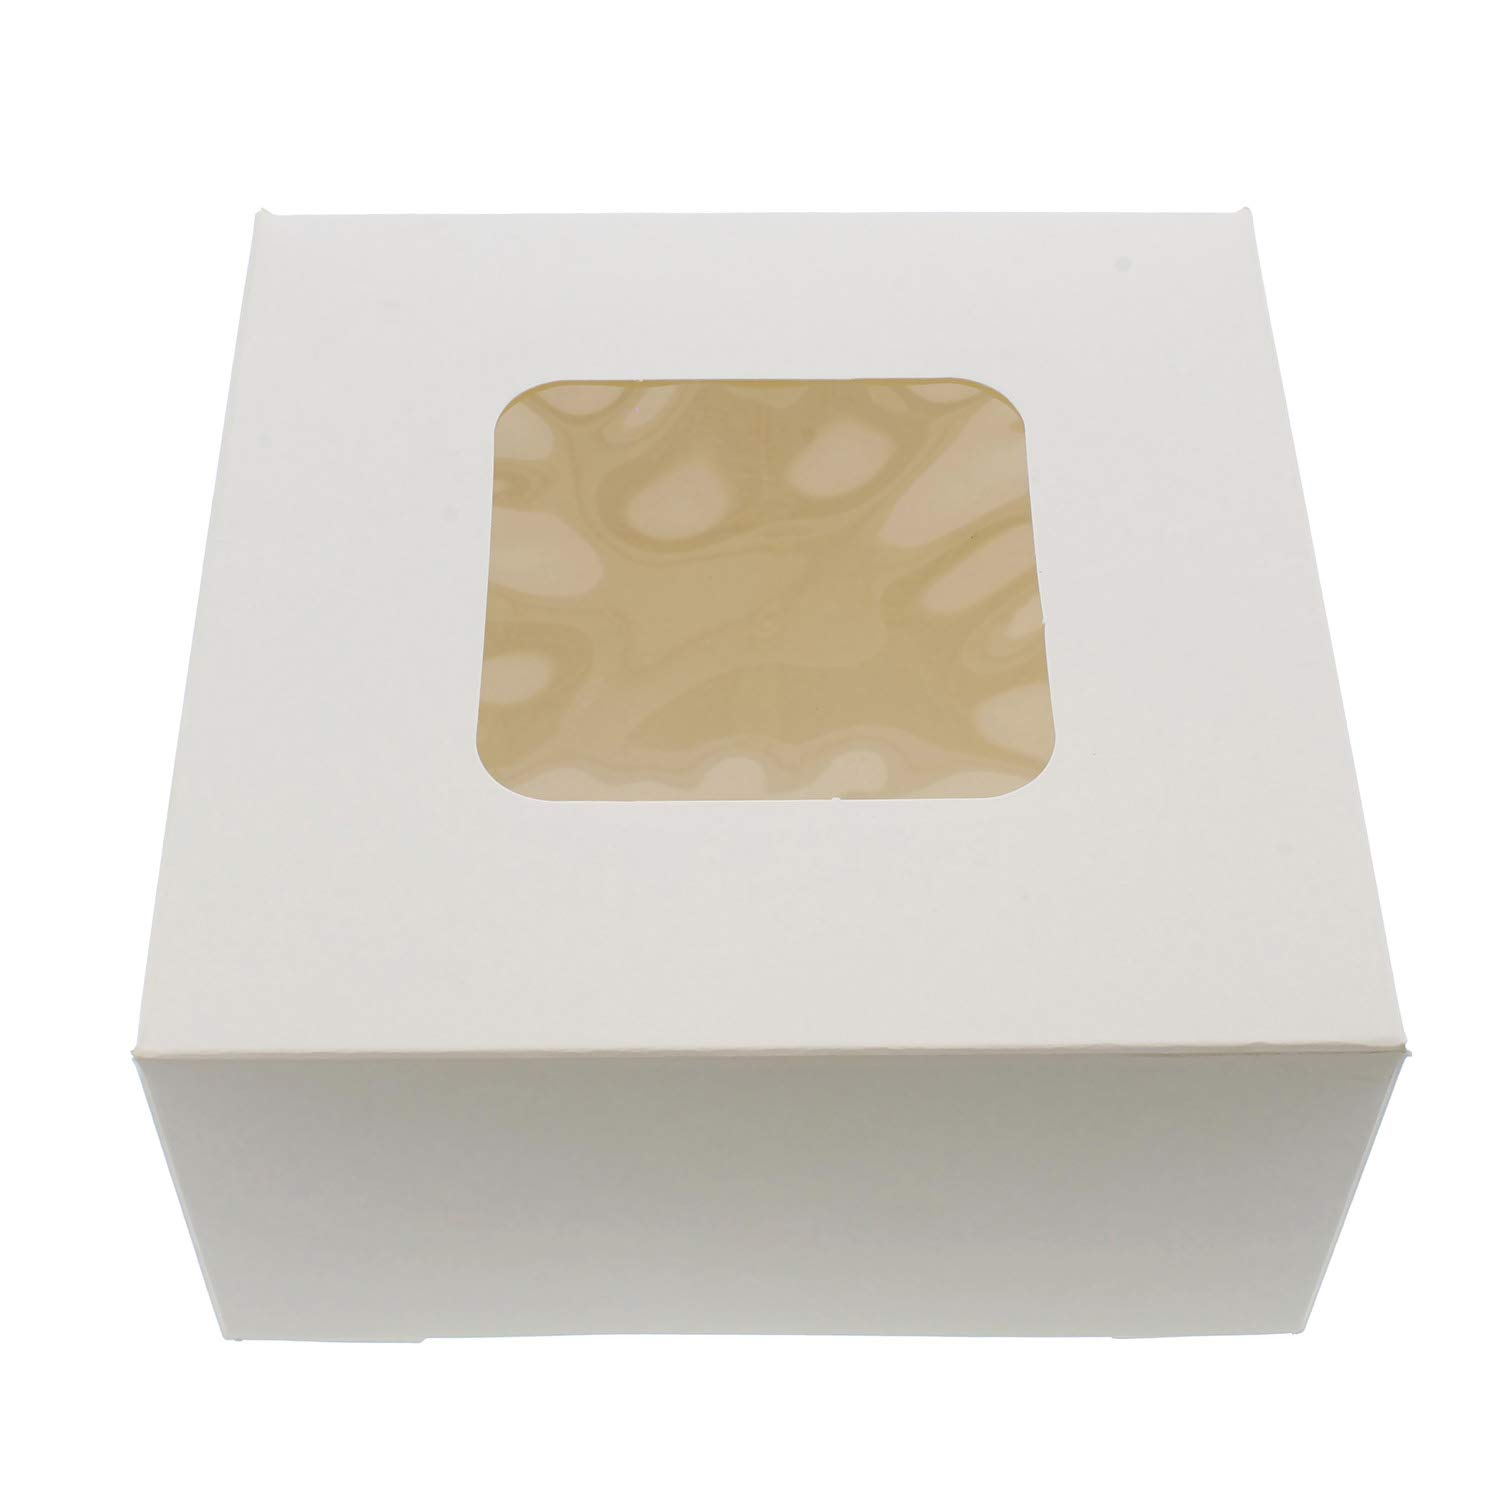 SpecialT White Bakery Boxes with Window, 200pk - 6'' x 6'' Inch Cake Boxes, Party Favor Boxes, Candy Boxes, Dessert Boxes by SpecialT (Image #1)